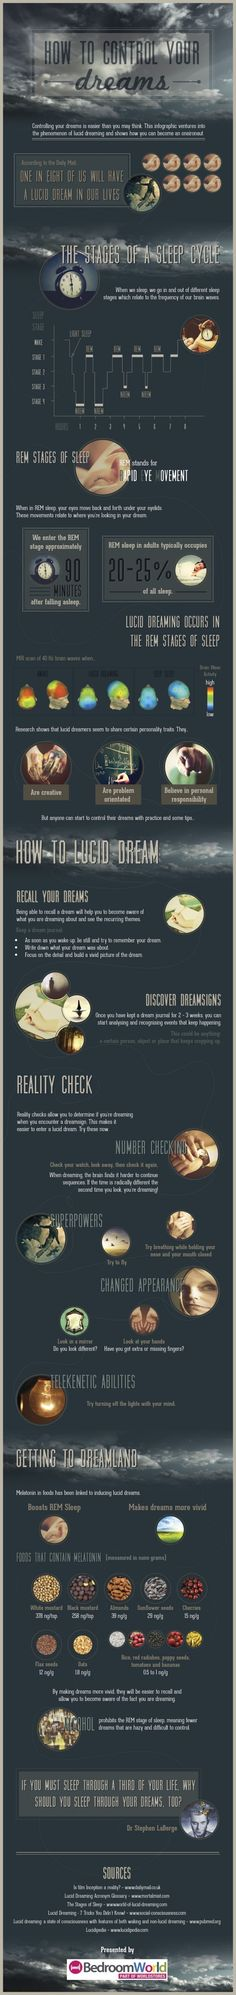 Infographic- How to control your dreams